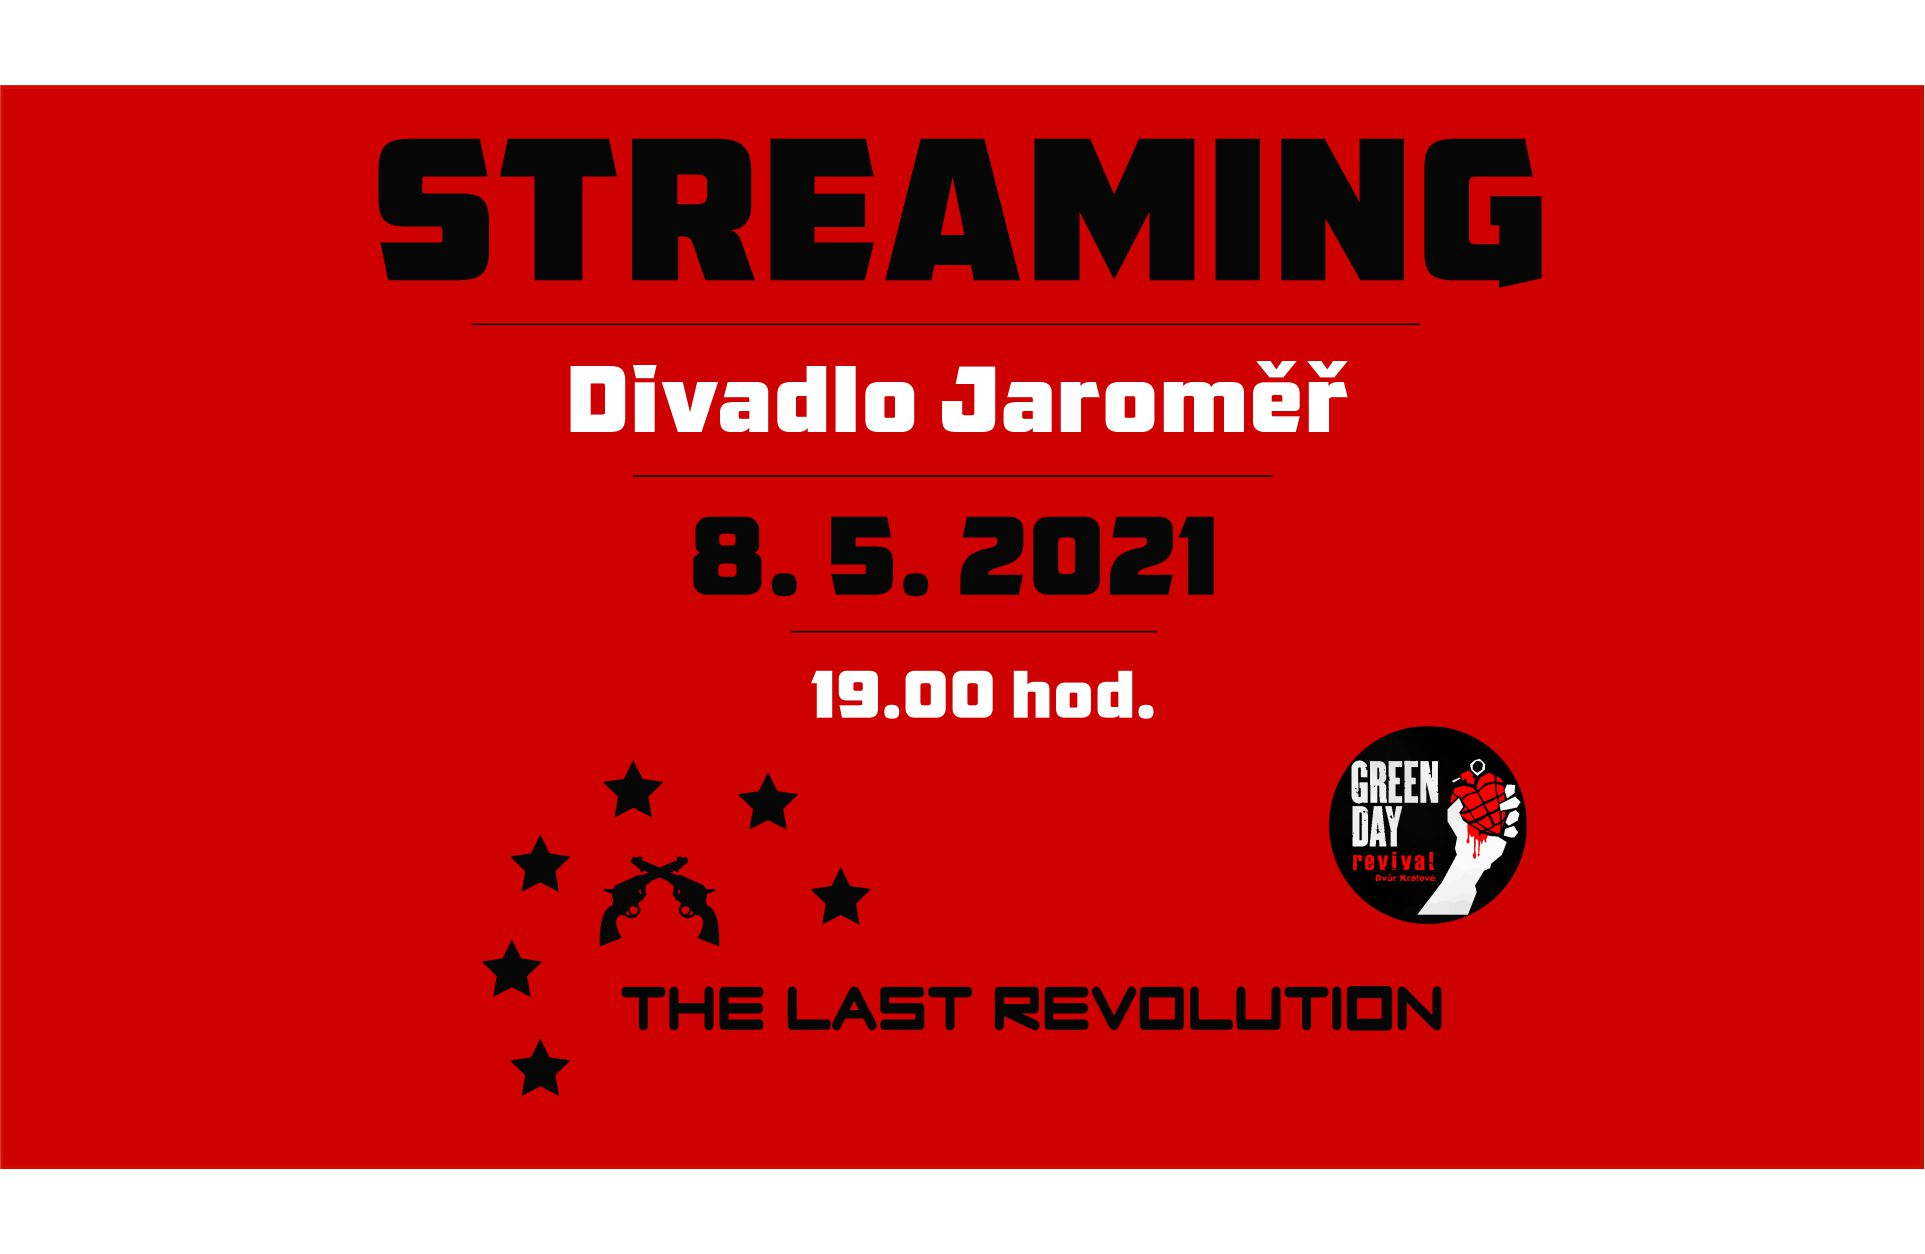 STREAMING - The Last Revolution